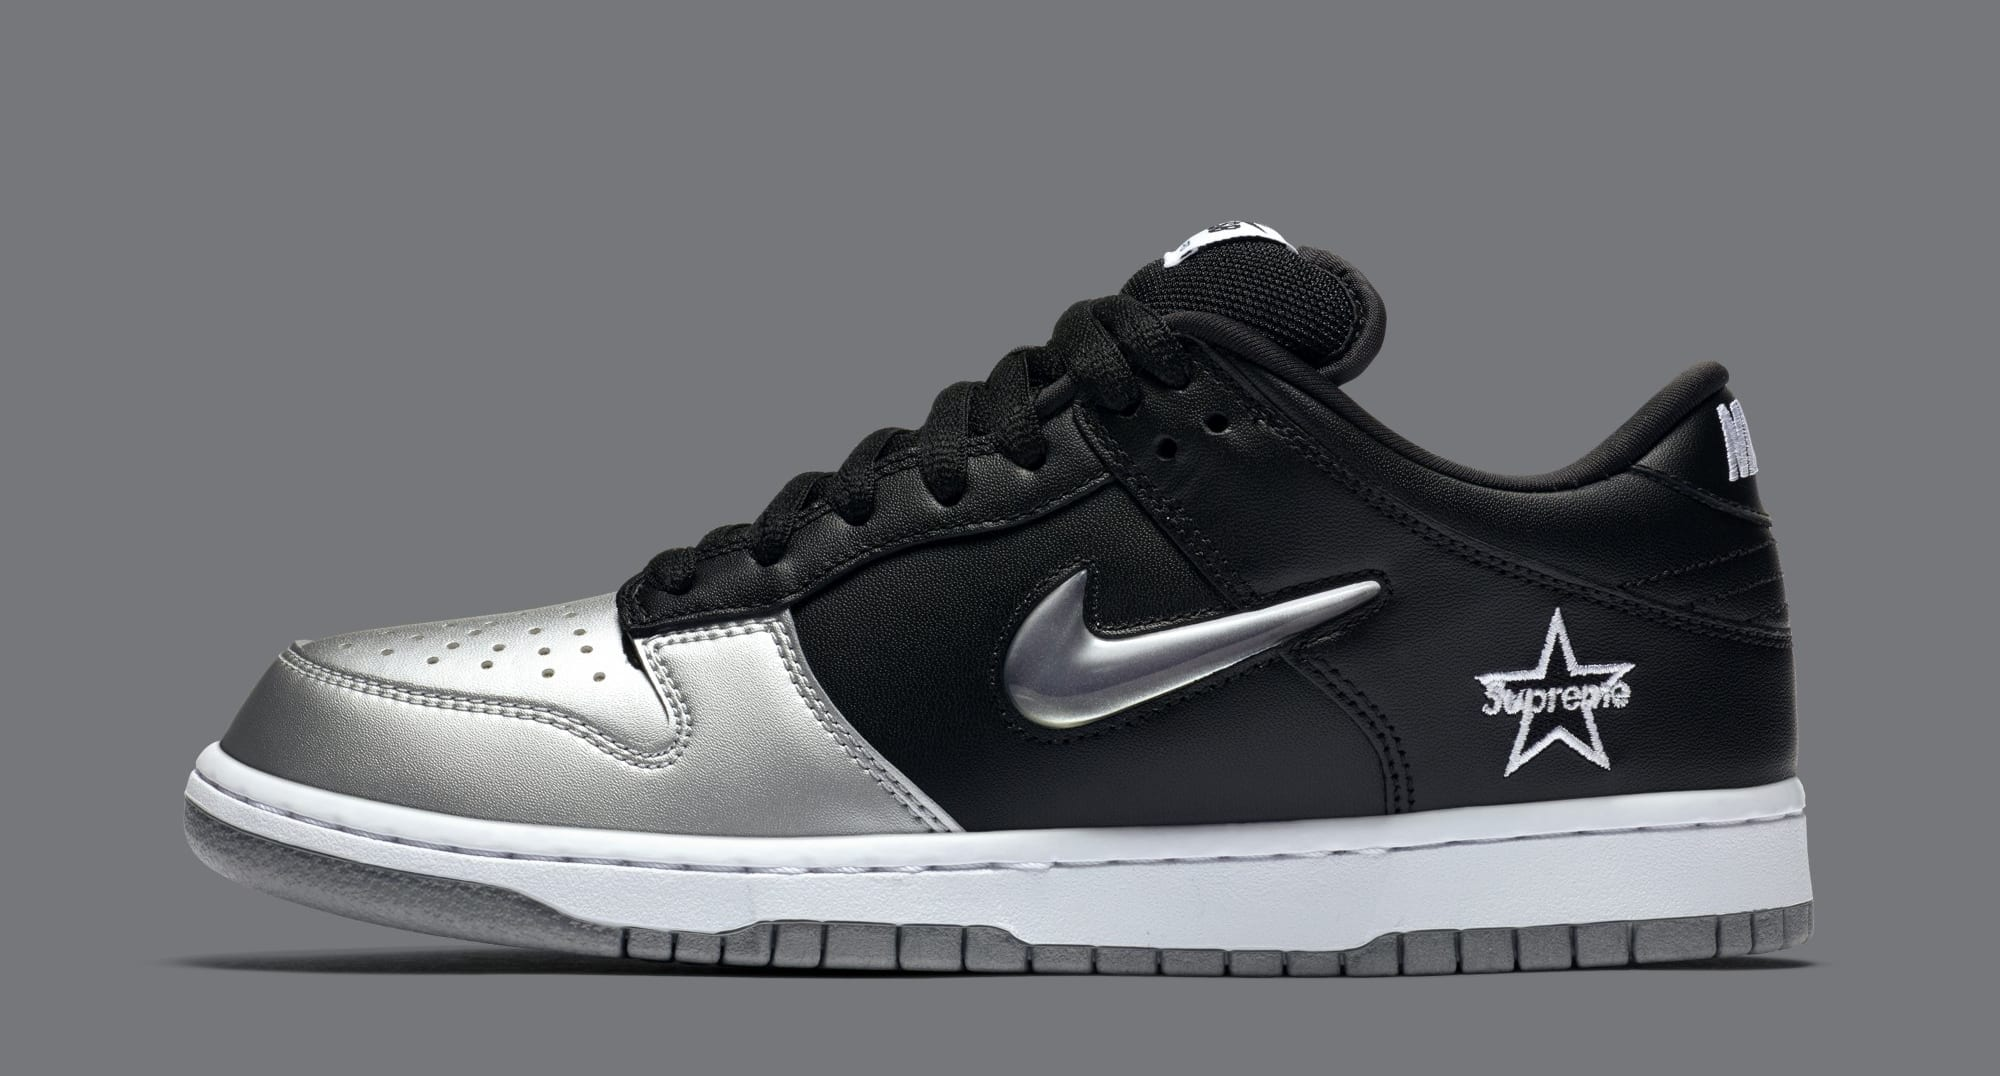 Supreme x Nike SB Dunk Low 'Metallic Silver/Metallic Silver/Black' CK3480-001 (Lateral)